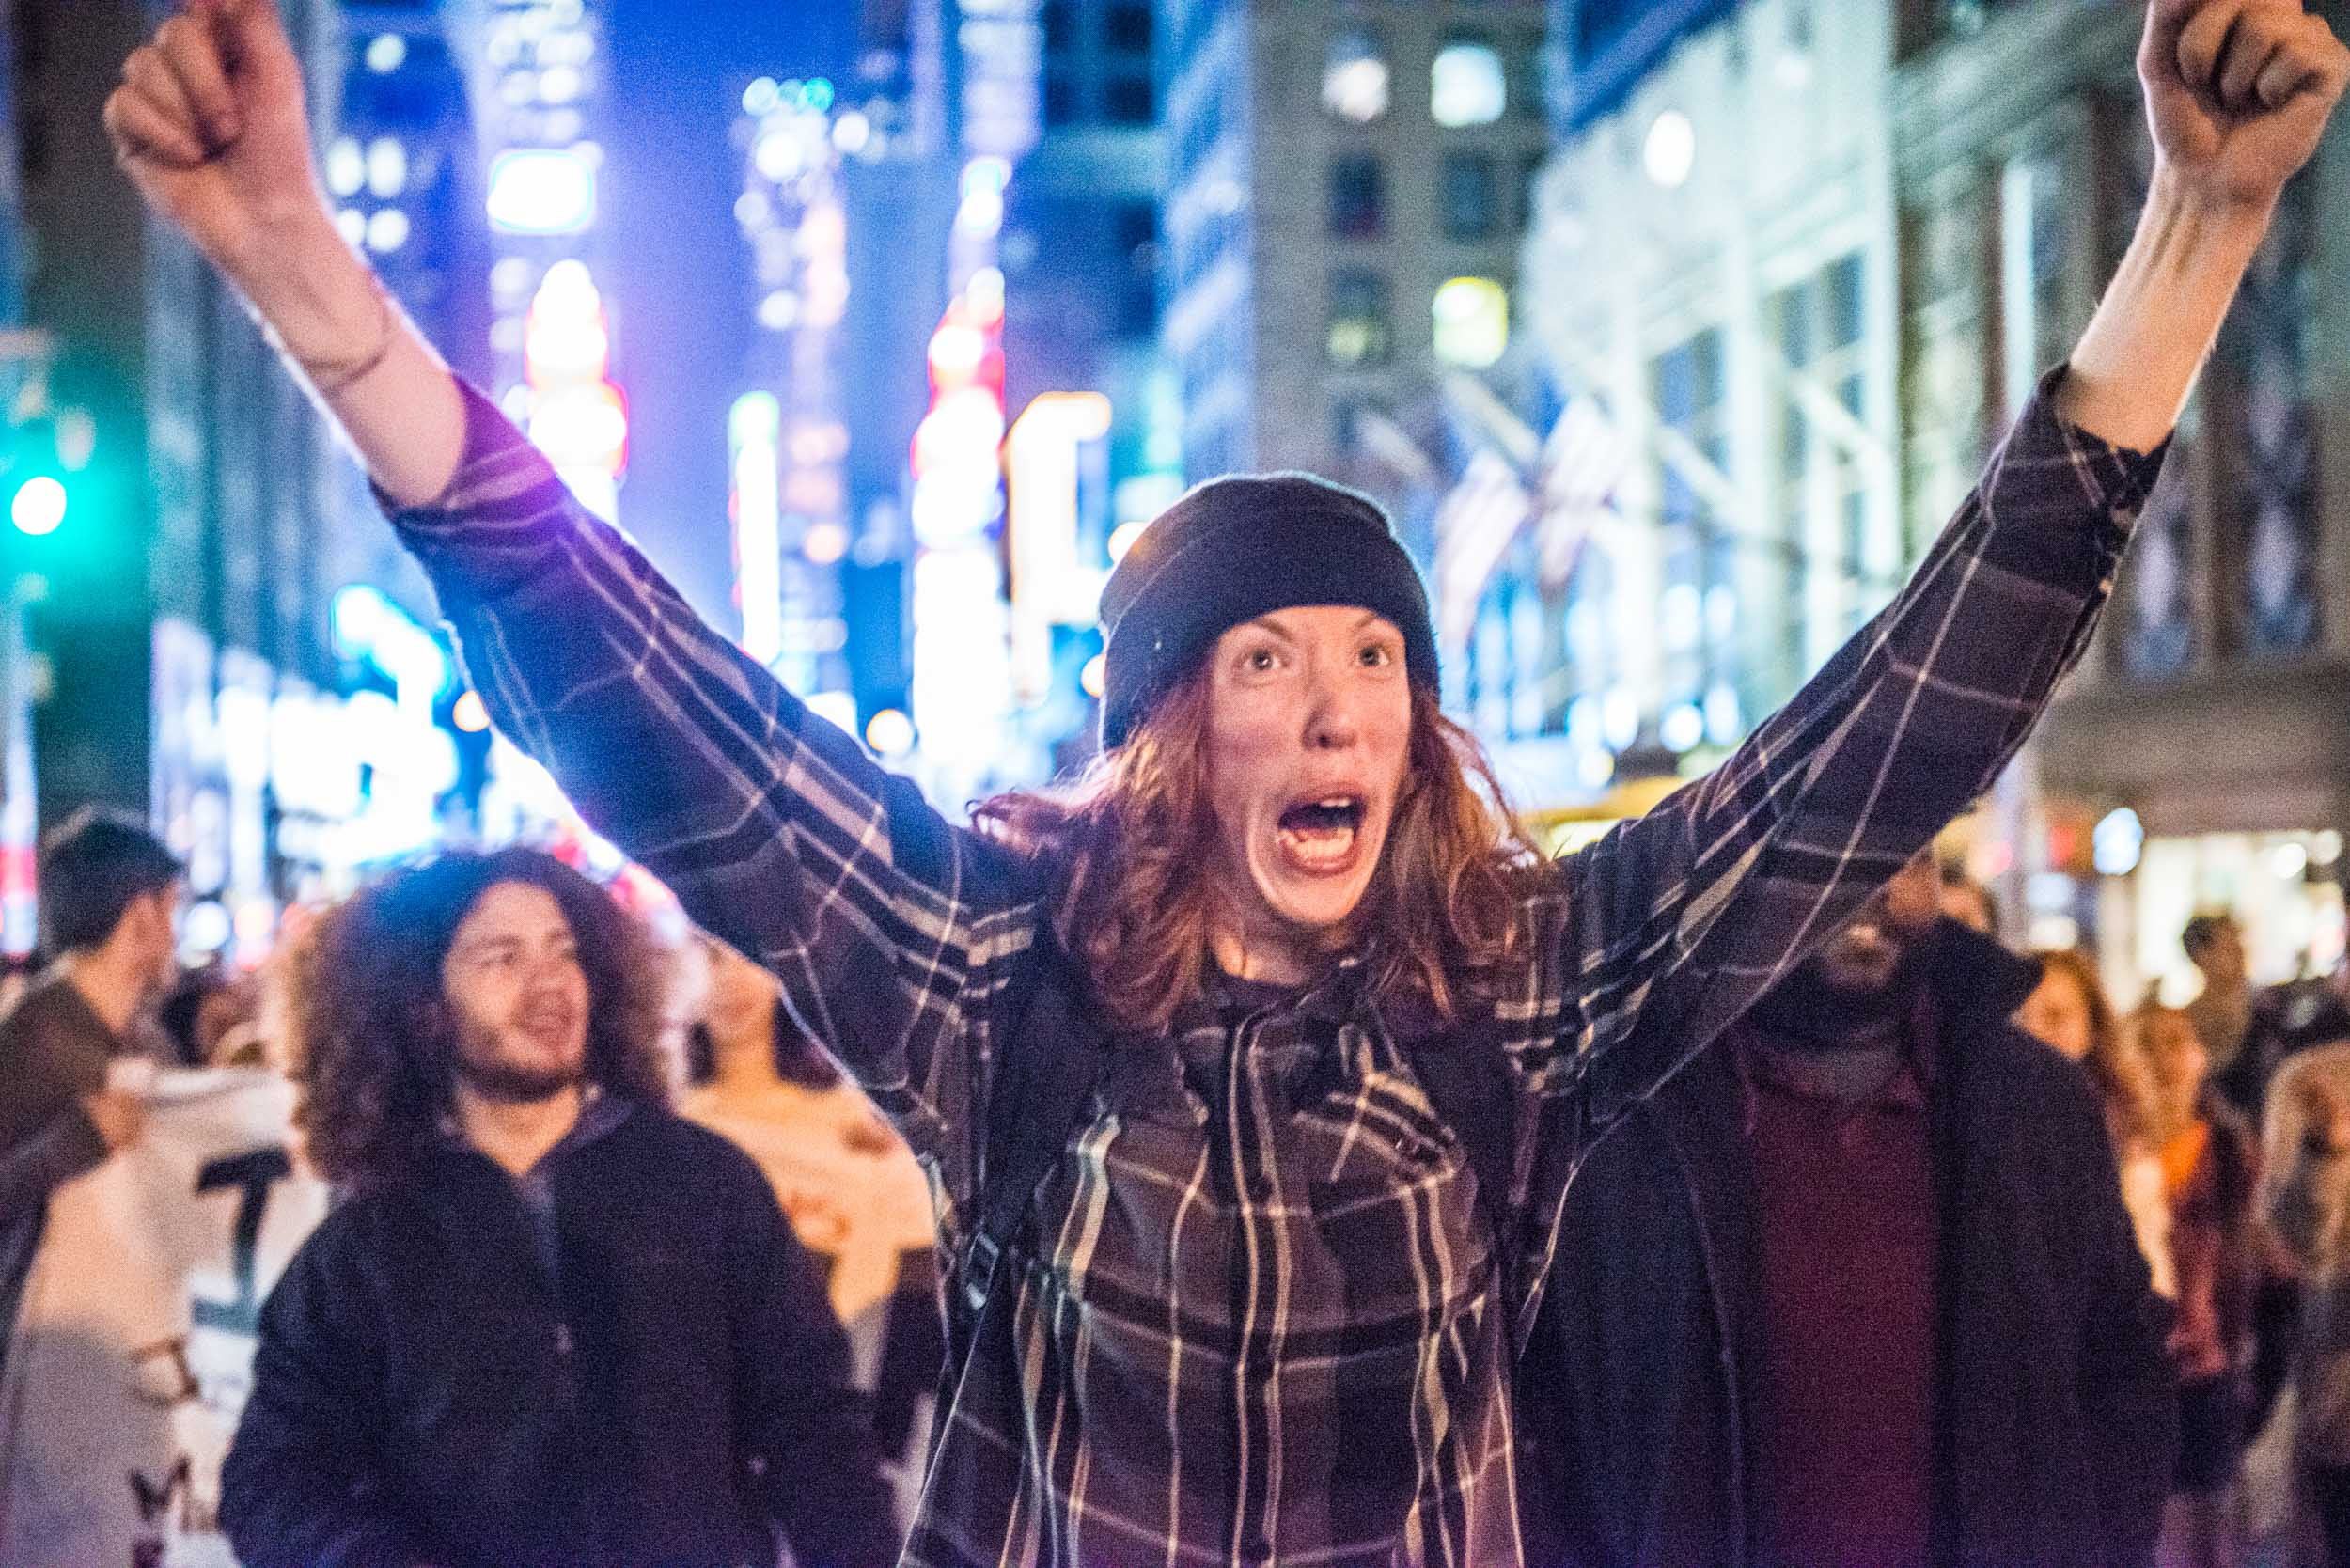 Black lives matter arms raised - current events - Photo credit Nicola Bailey.jpg